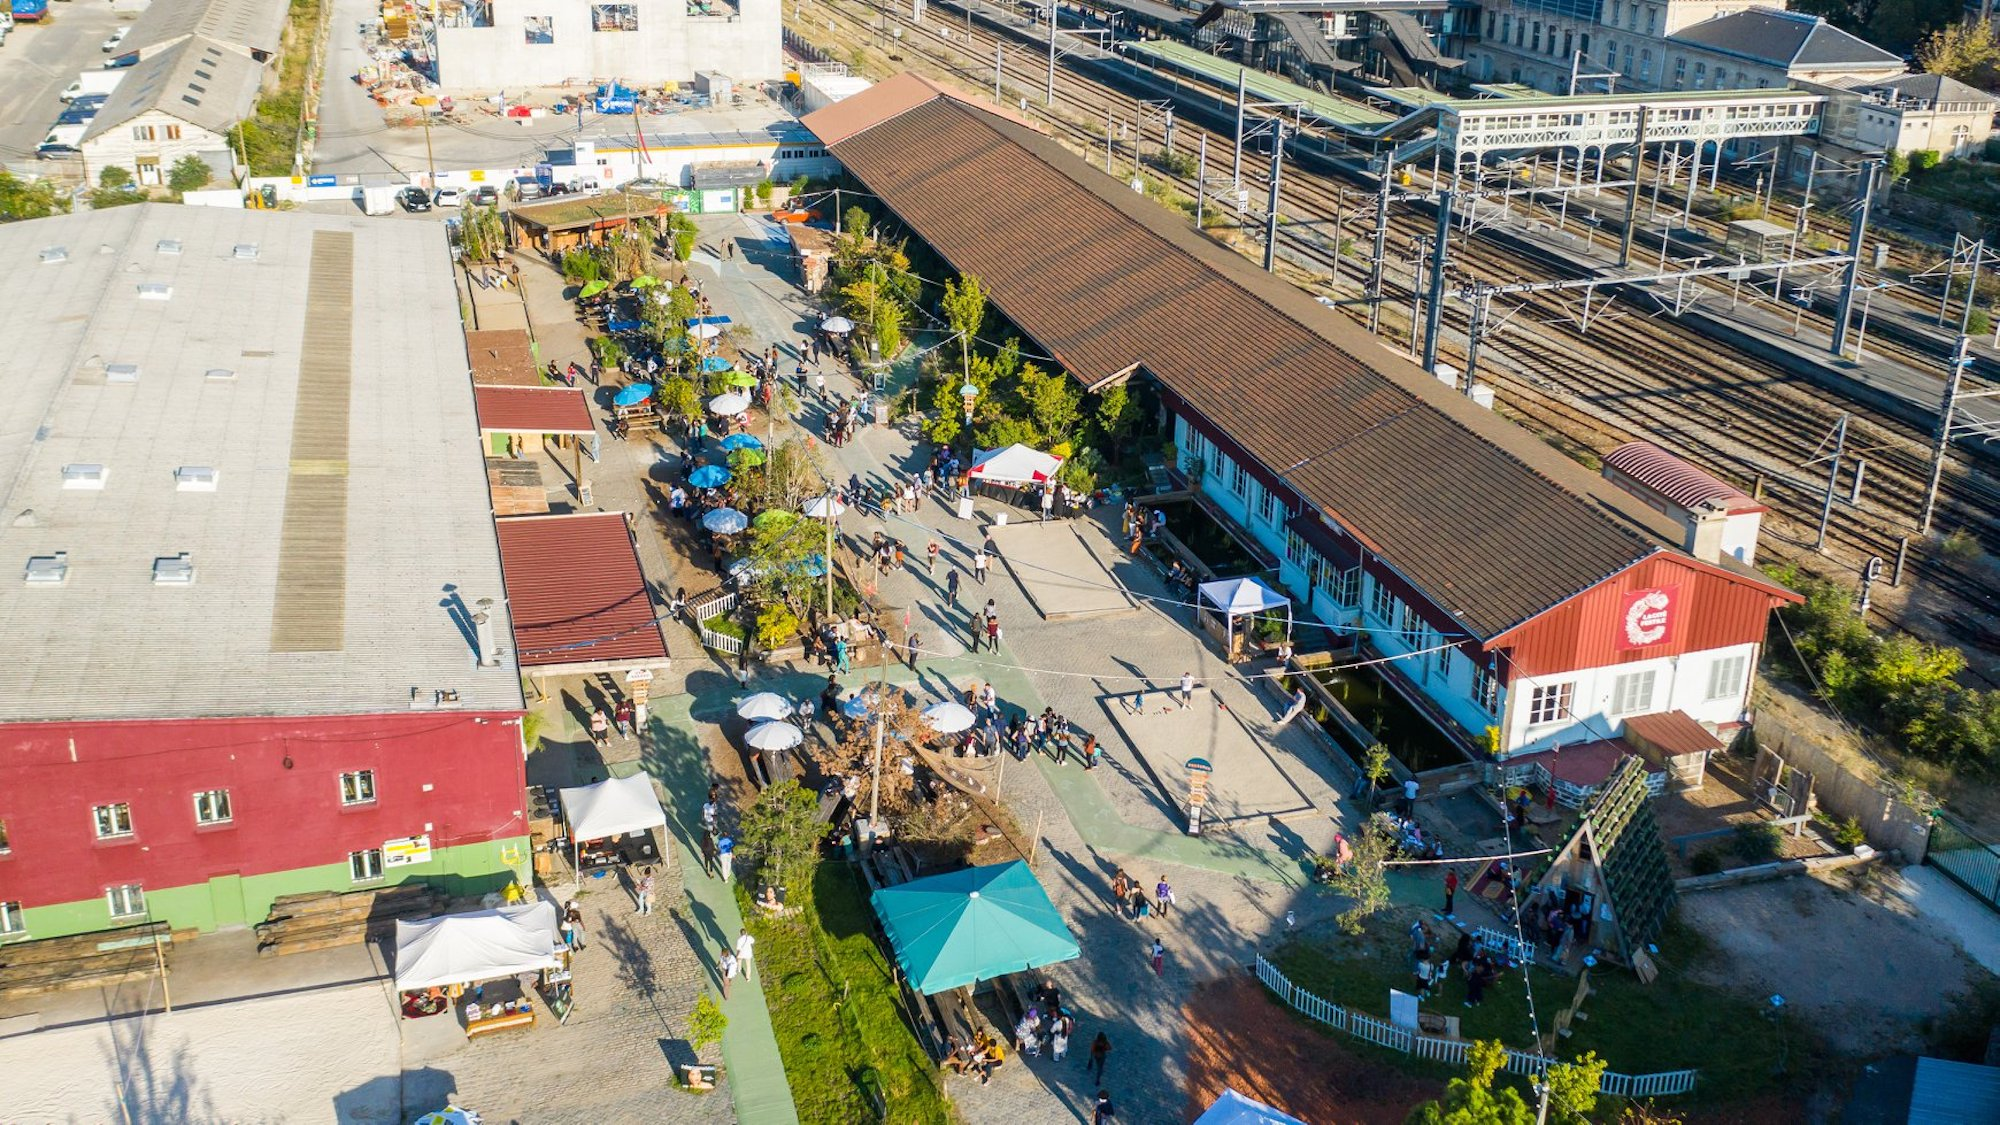 View from the sky of the CIté Fertile culture hub and bar in Pantin on the outskirts of Paris.